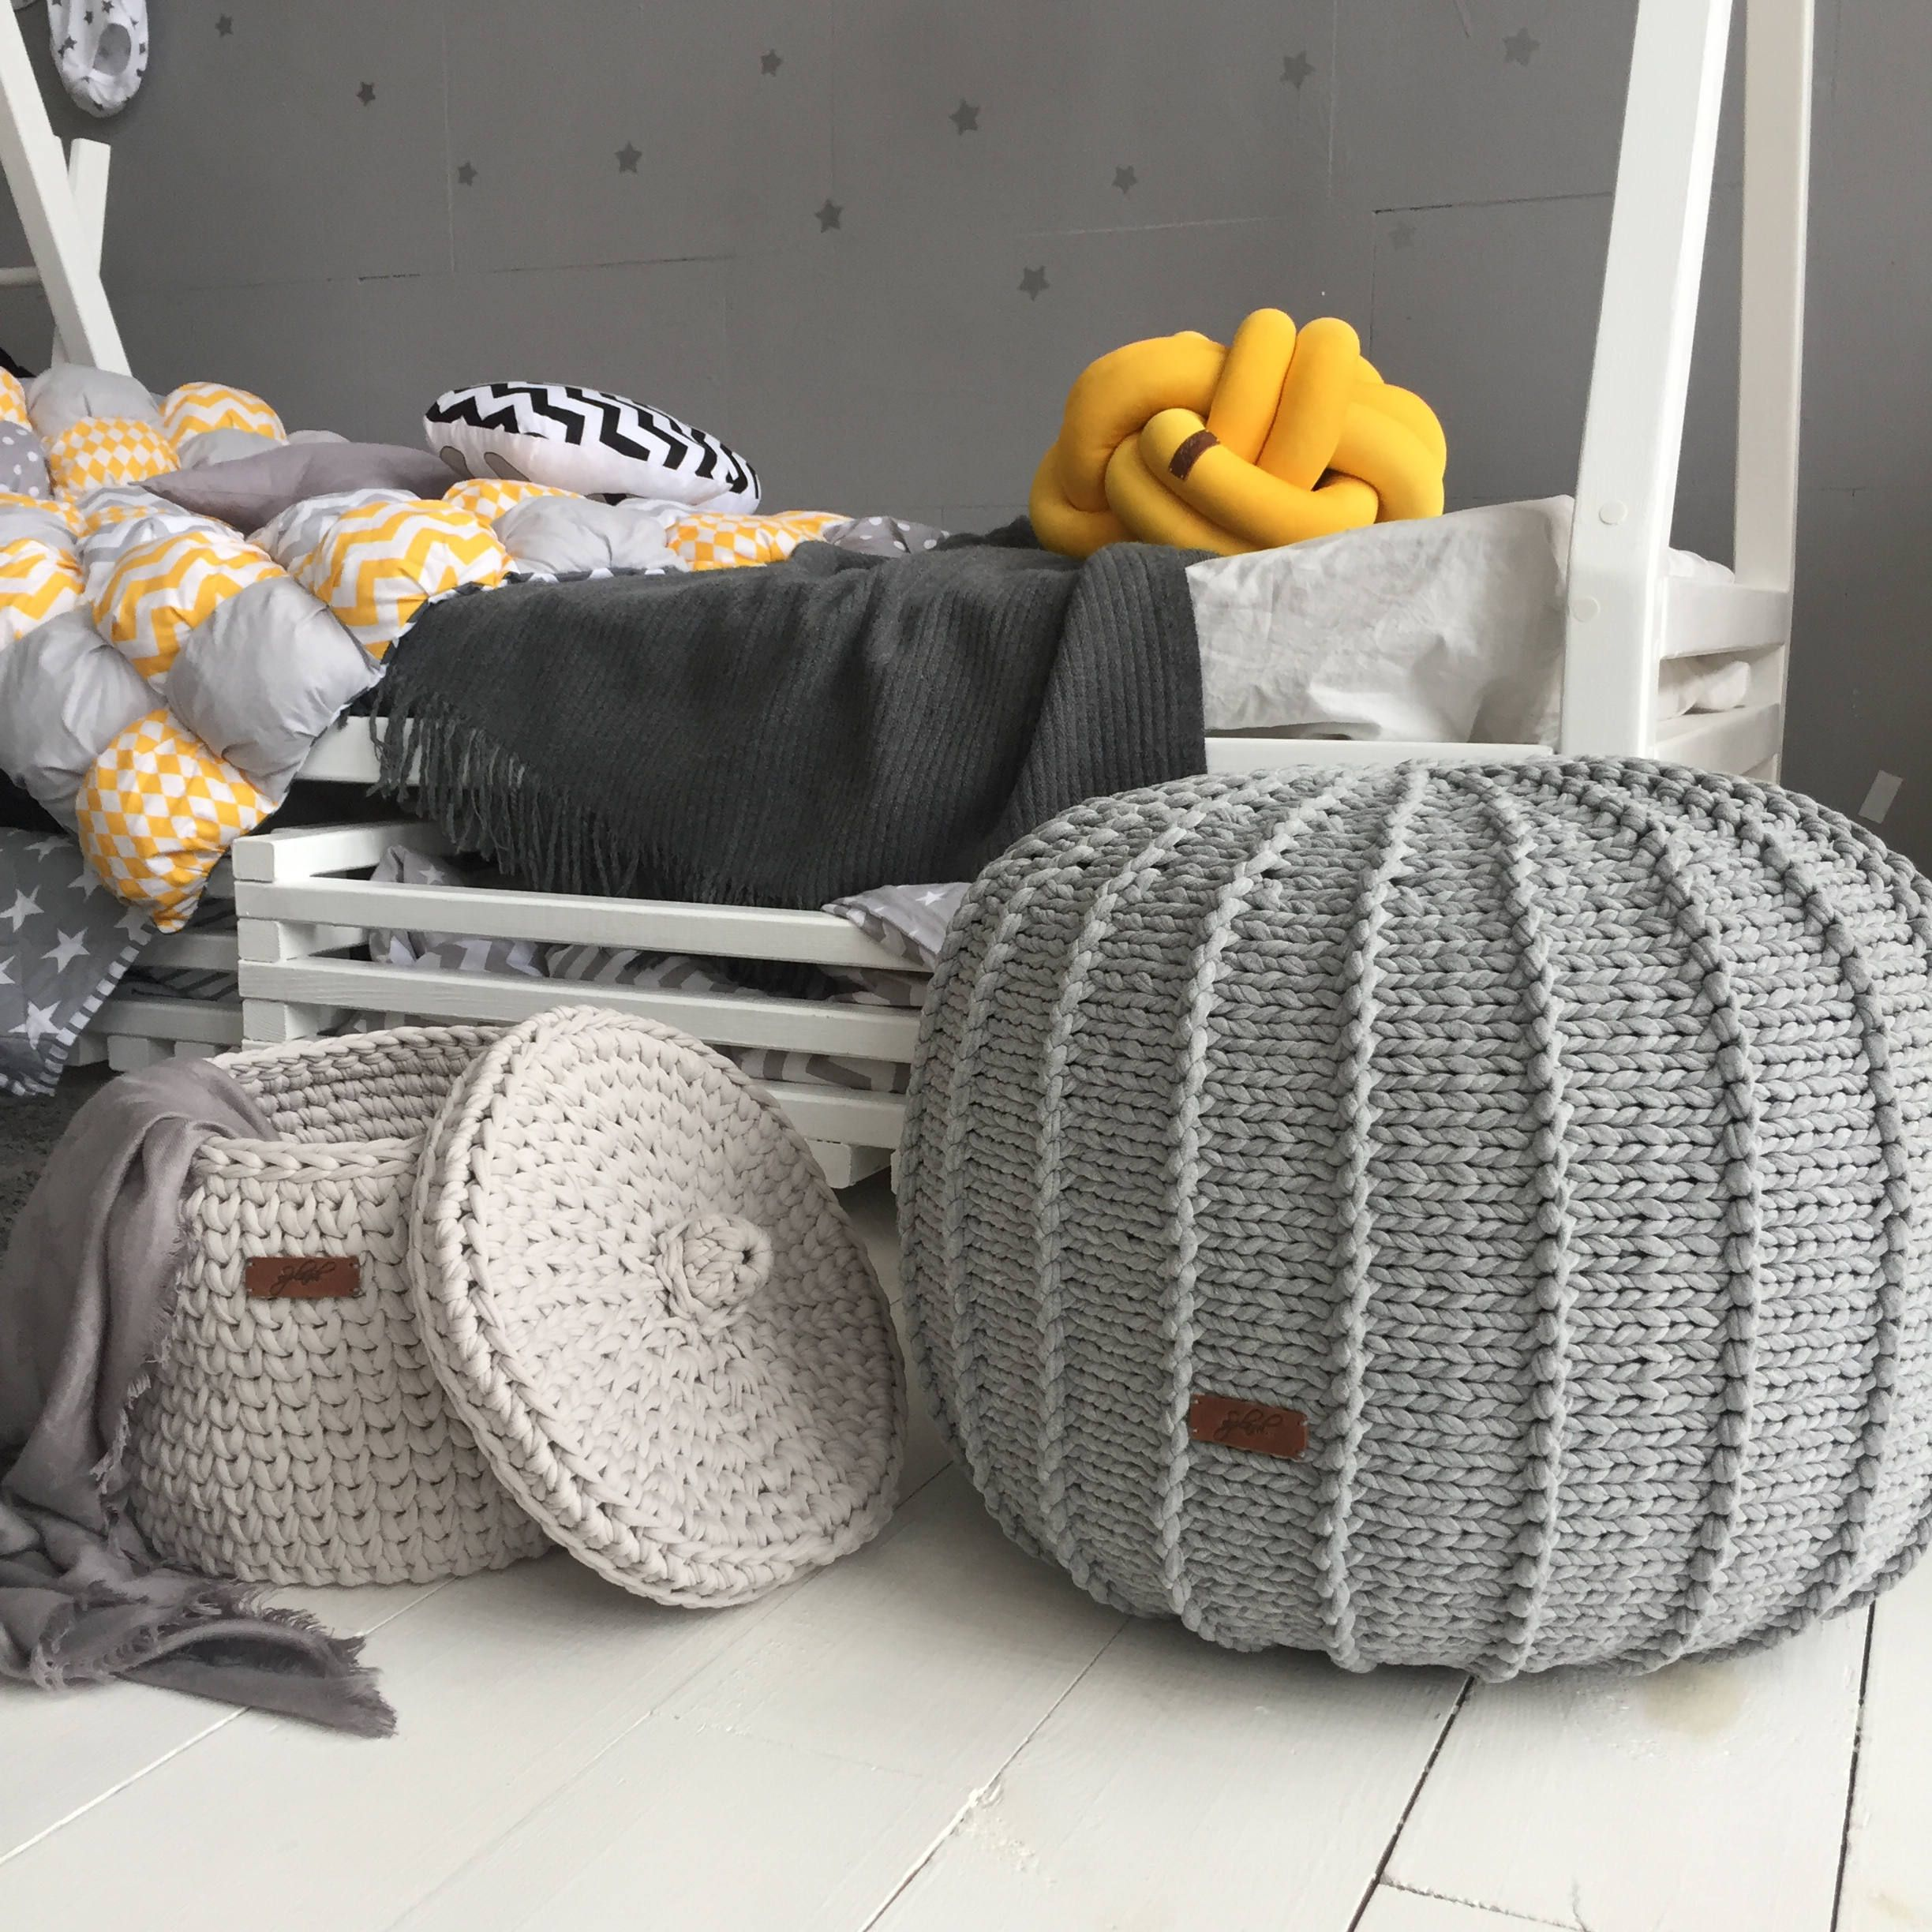 Large Pouf Ottoman Captivating Large Grey Floor Pouf Ottoman  Knitted Pouf  Knit Pouf  Knitted Design Ideas